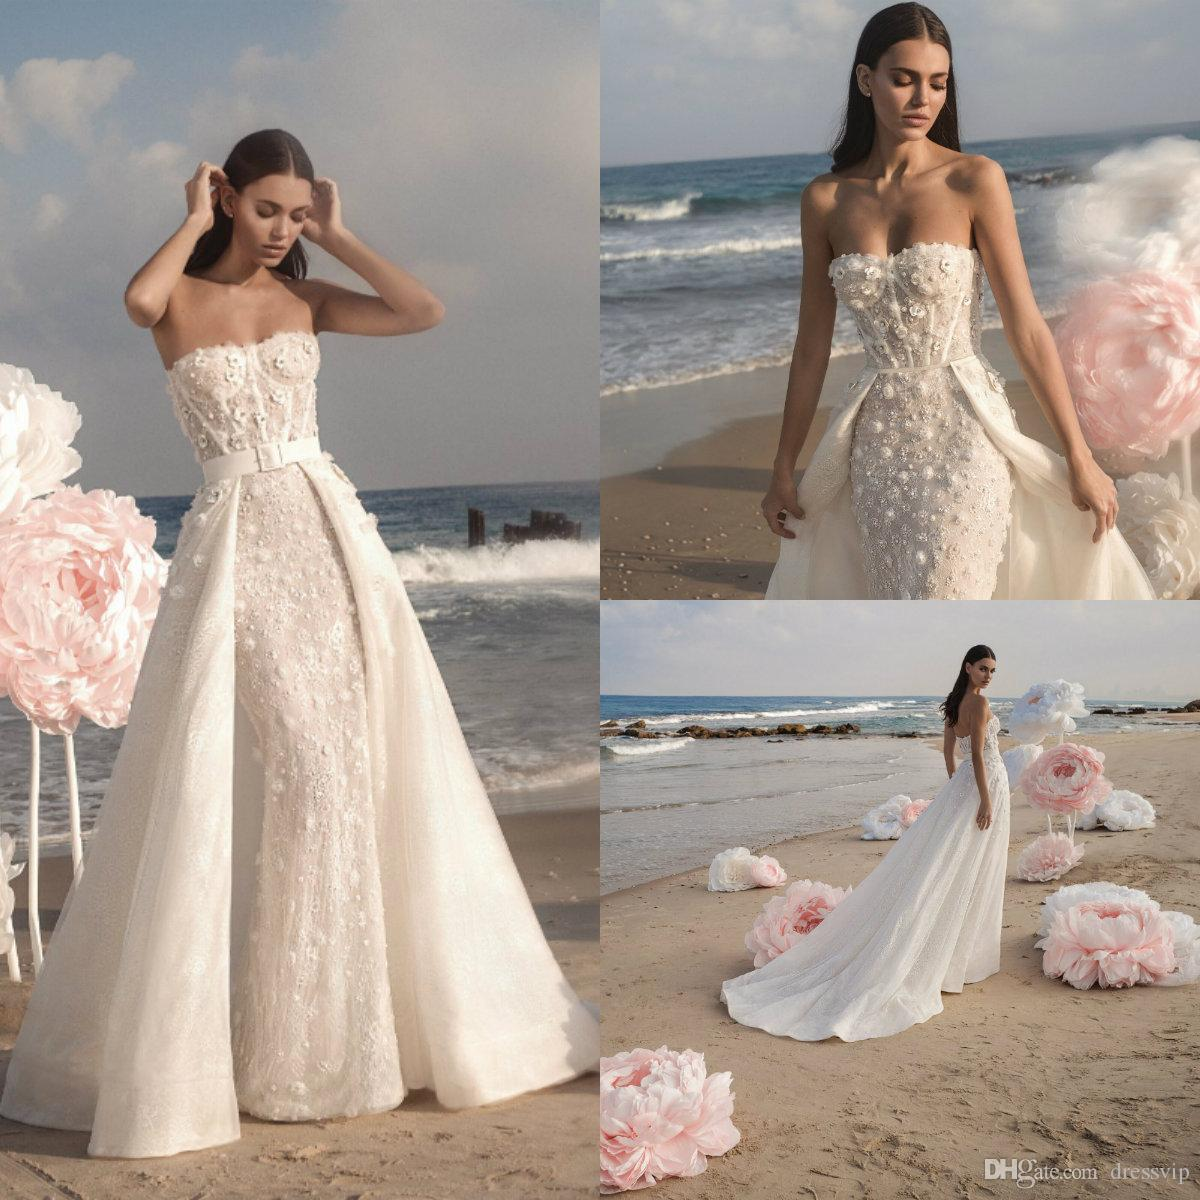 25384439d3d 2019 Berta Mermaid Wedding Dresses With Detachable Overskirts Lace 3D Floral  Applique Beads Beach Wedding Dress Vestito Da Sposa Bridal Gown Wedding  Gowns ...